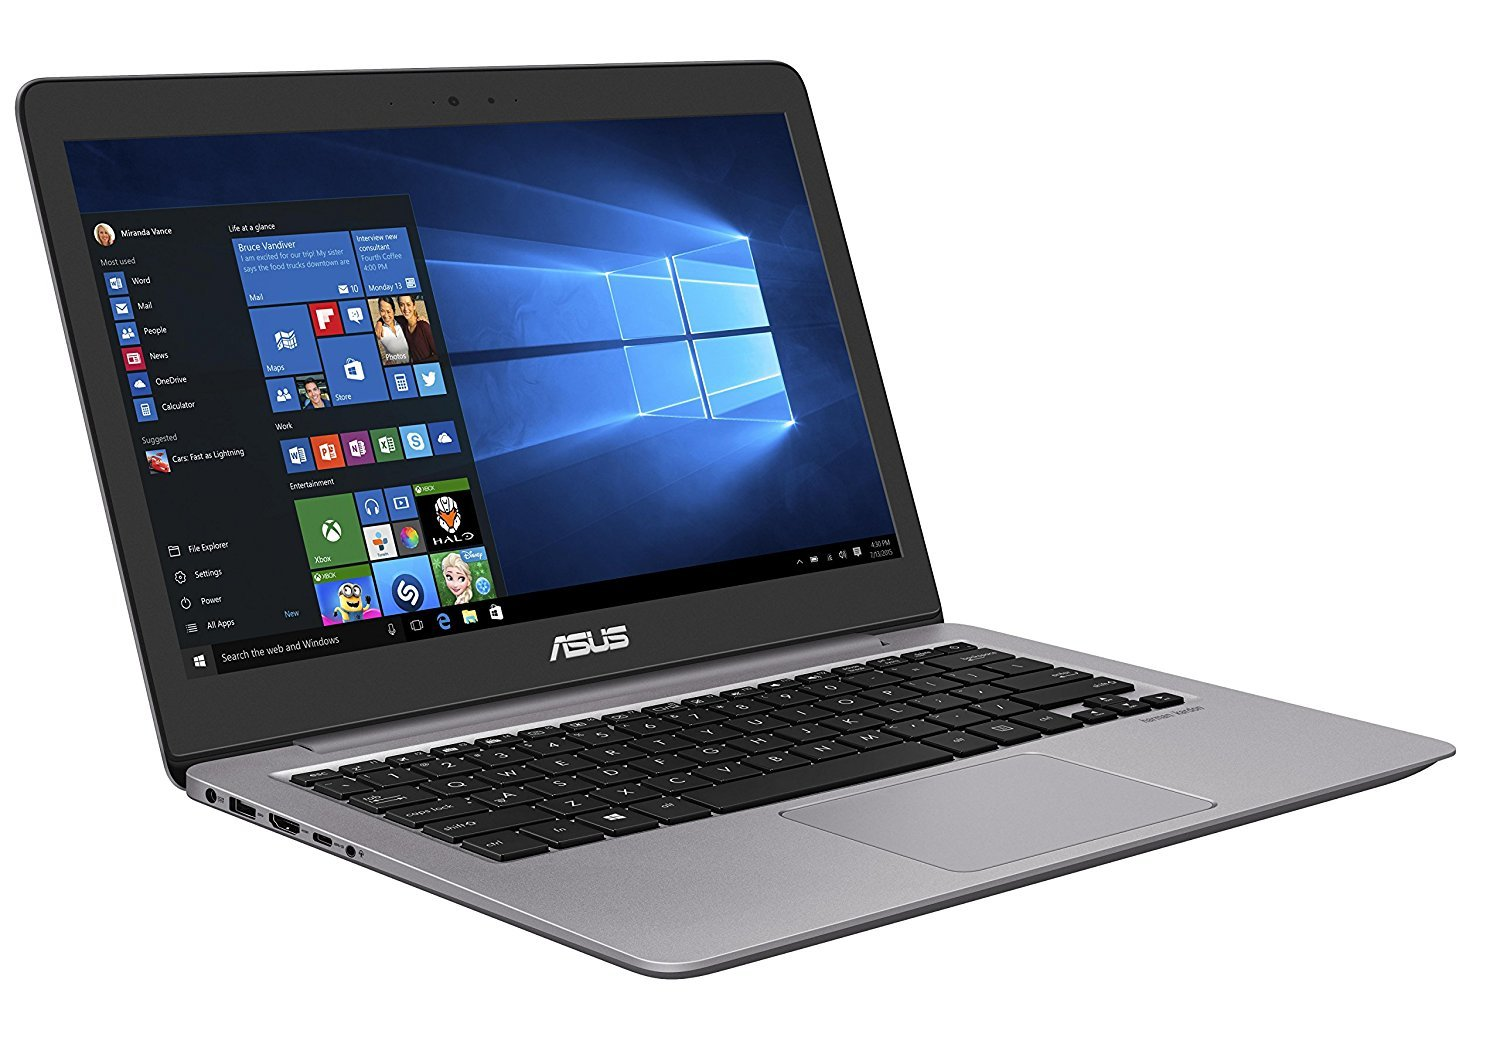 asus zenbook ux310ua fc073t 2 tests infos 2018. Black Bedroom Furniture Sets. Home Design Ideas